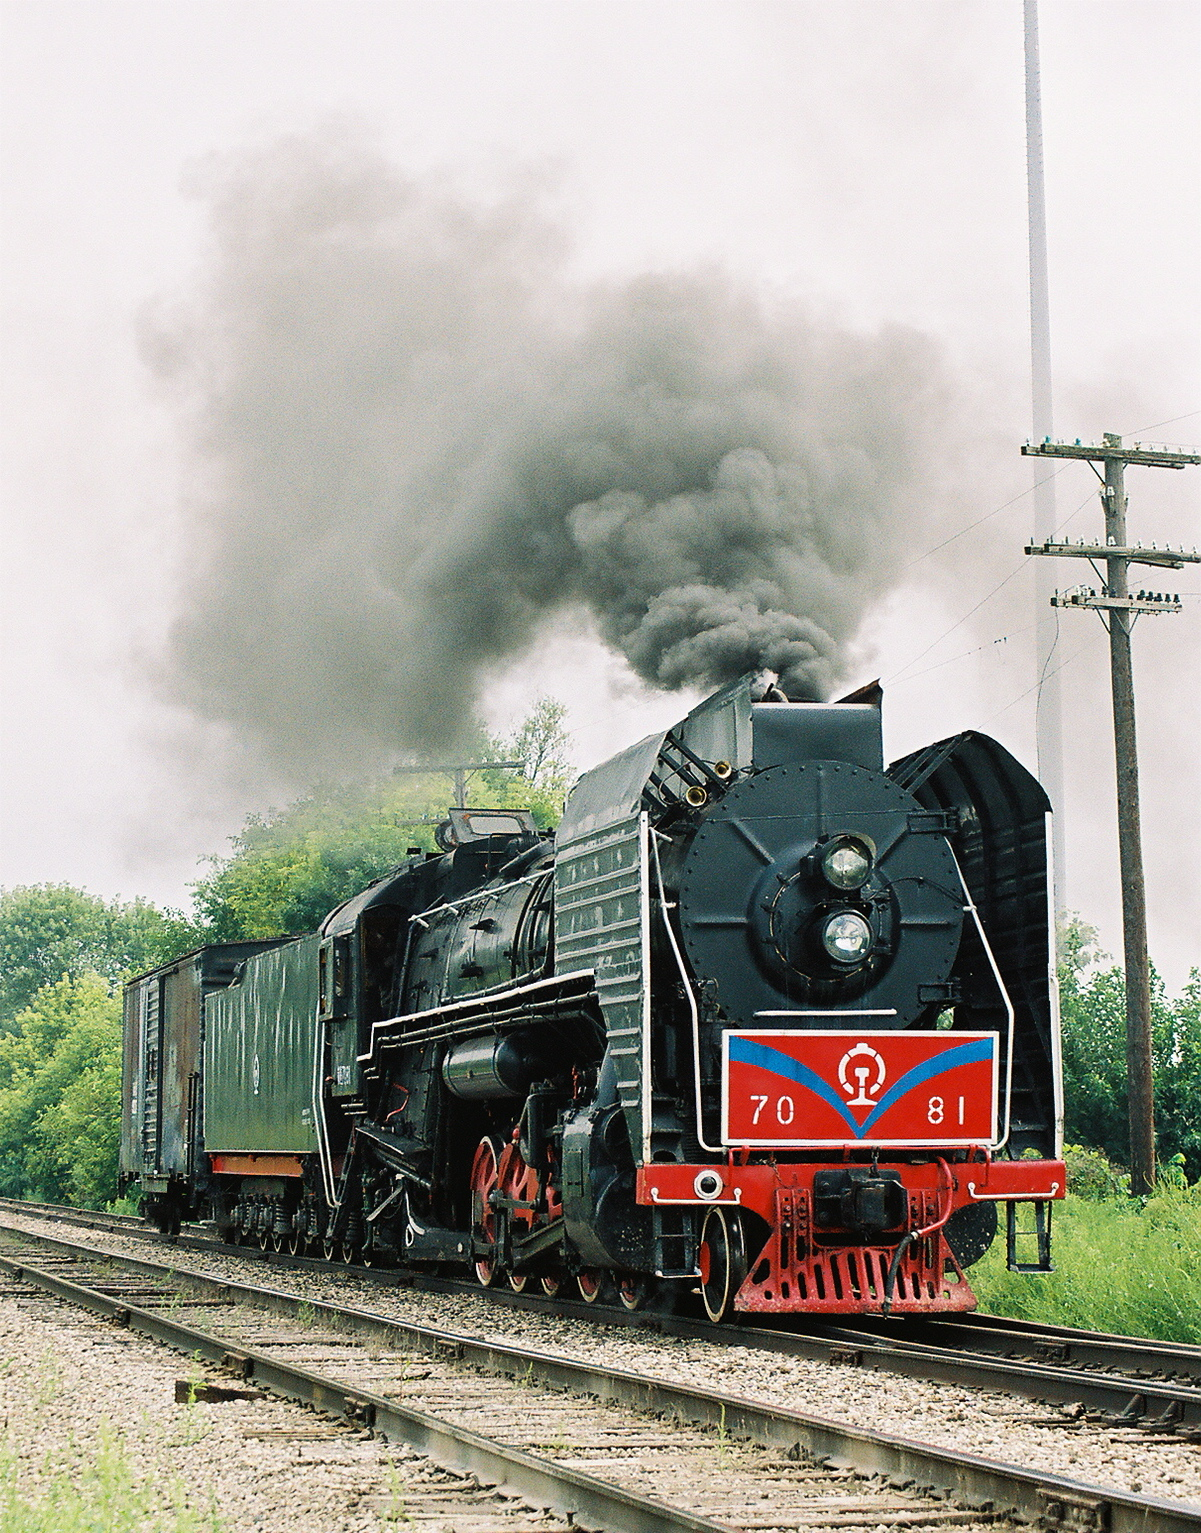 7081 undergoes initial testing on the wye track on the east side of Iowa City in early September 2006.